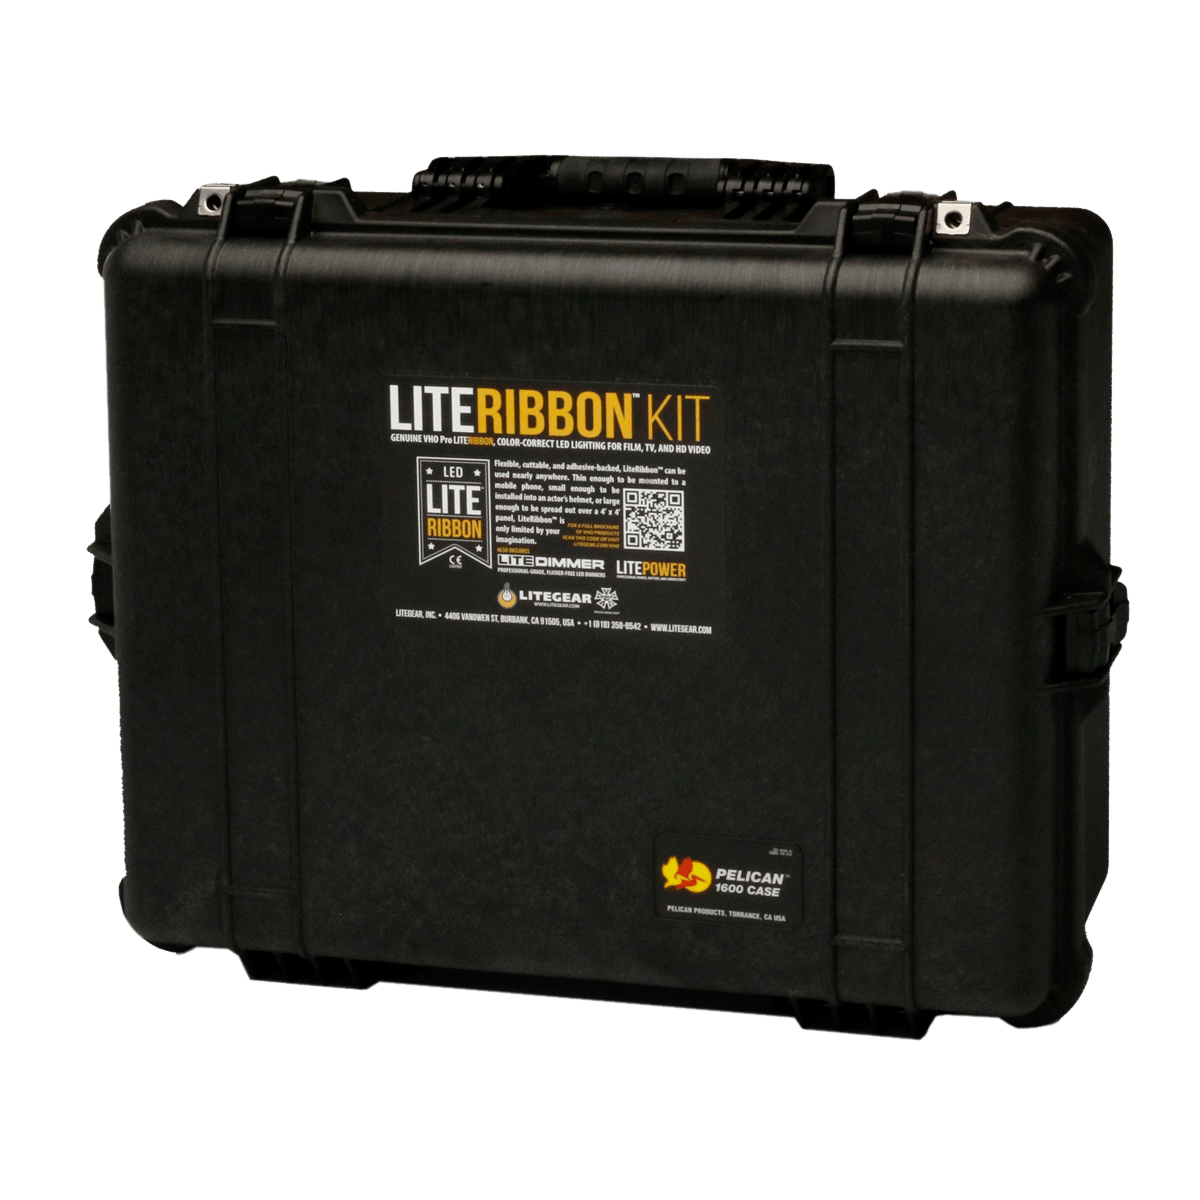 LiteGear LiteRibbon Pro Feature Kit